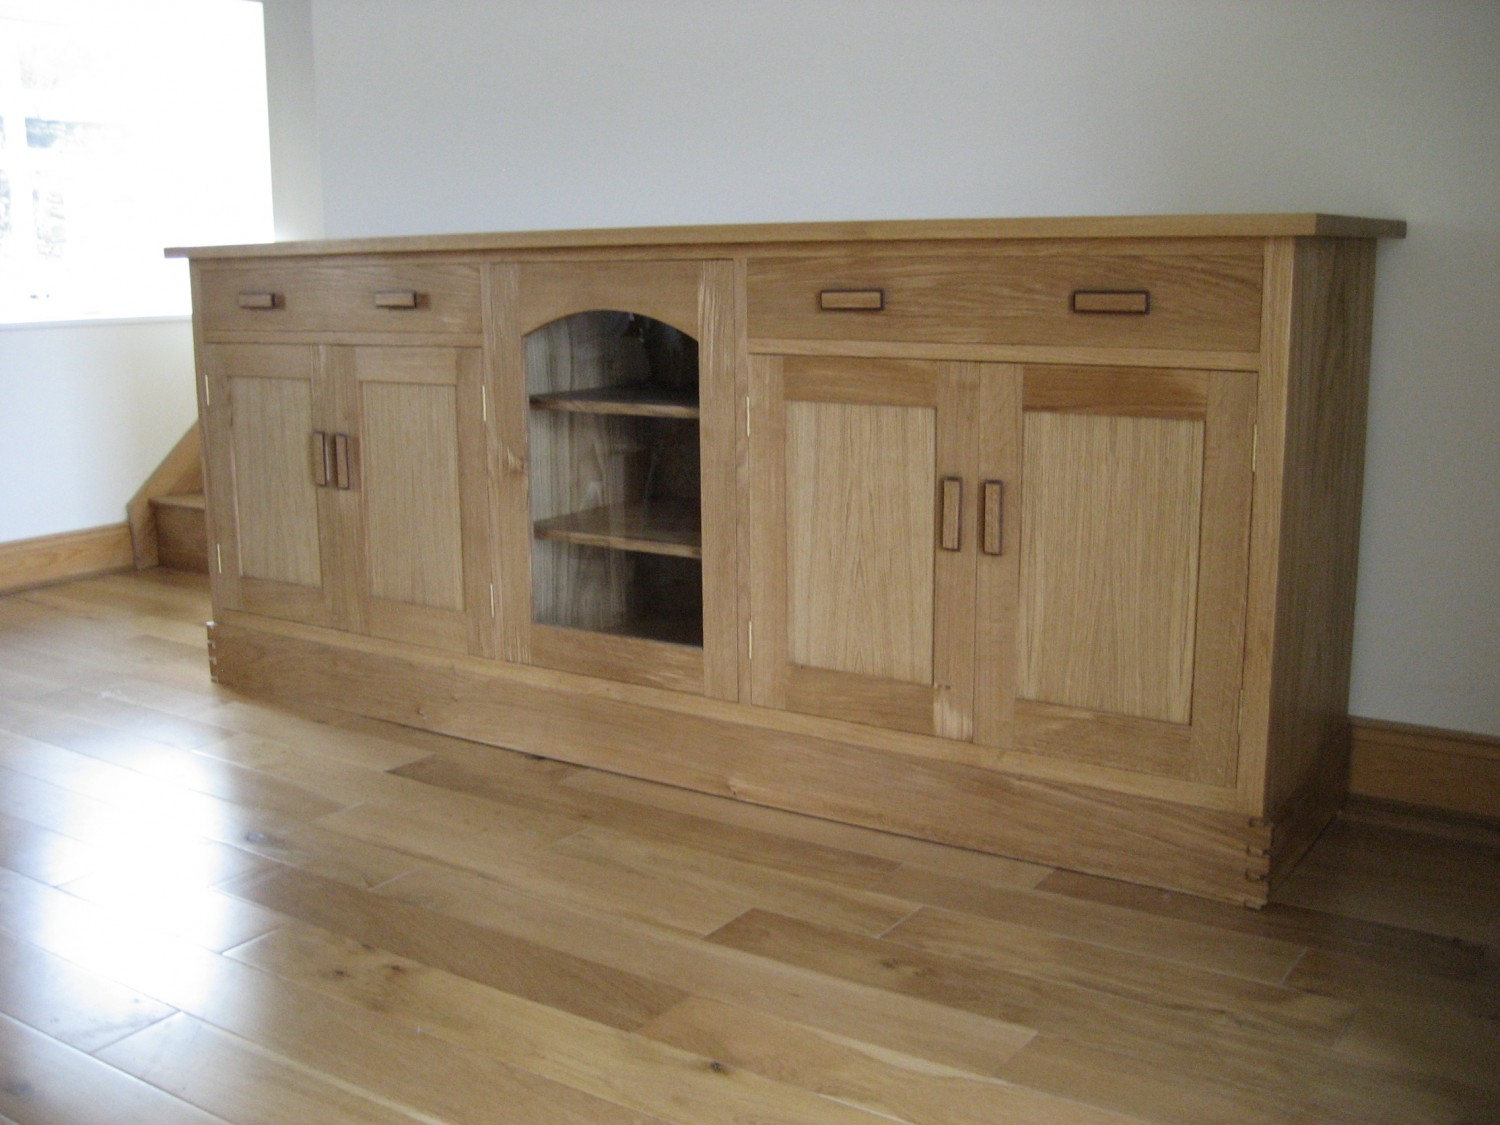 Cabinet-sideboard-kitchen-